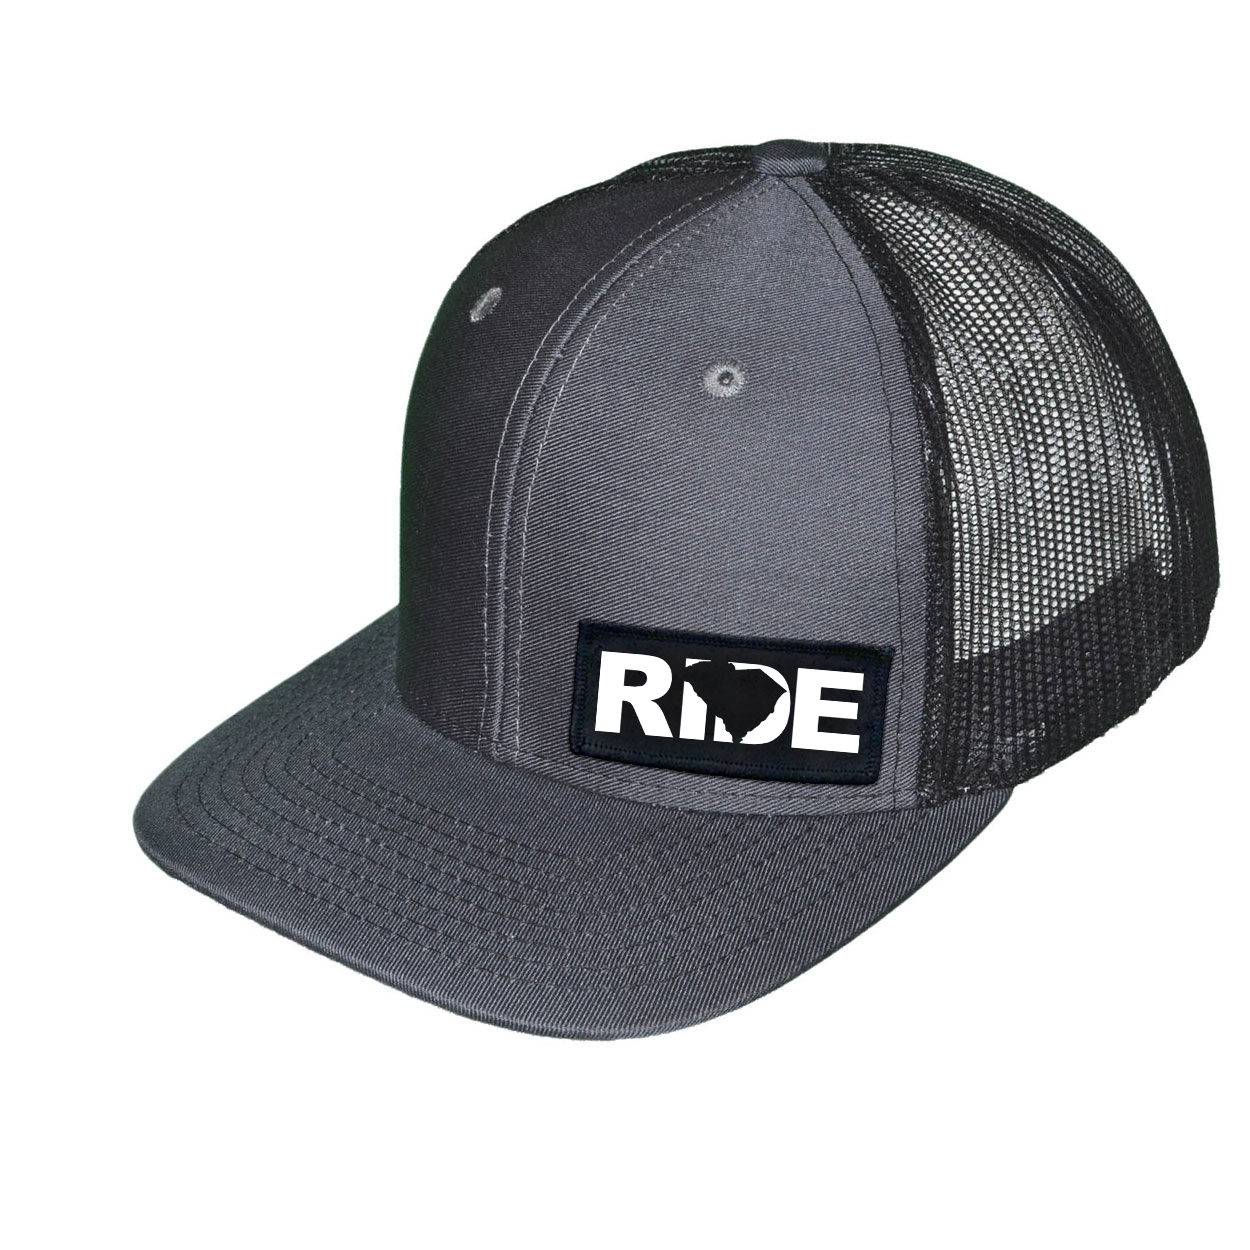 Ride South Carolina Night Out Woven Patch Snapback Trucker Hat Dark Gray/Black (White Logo)